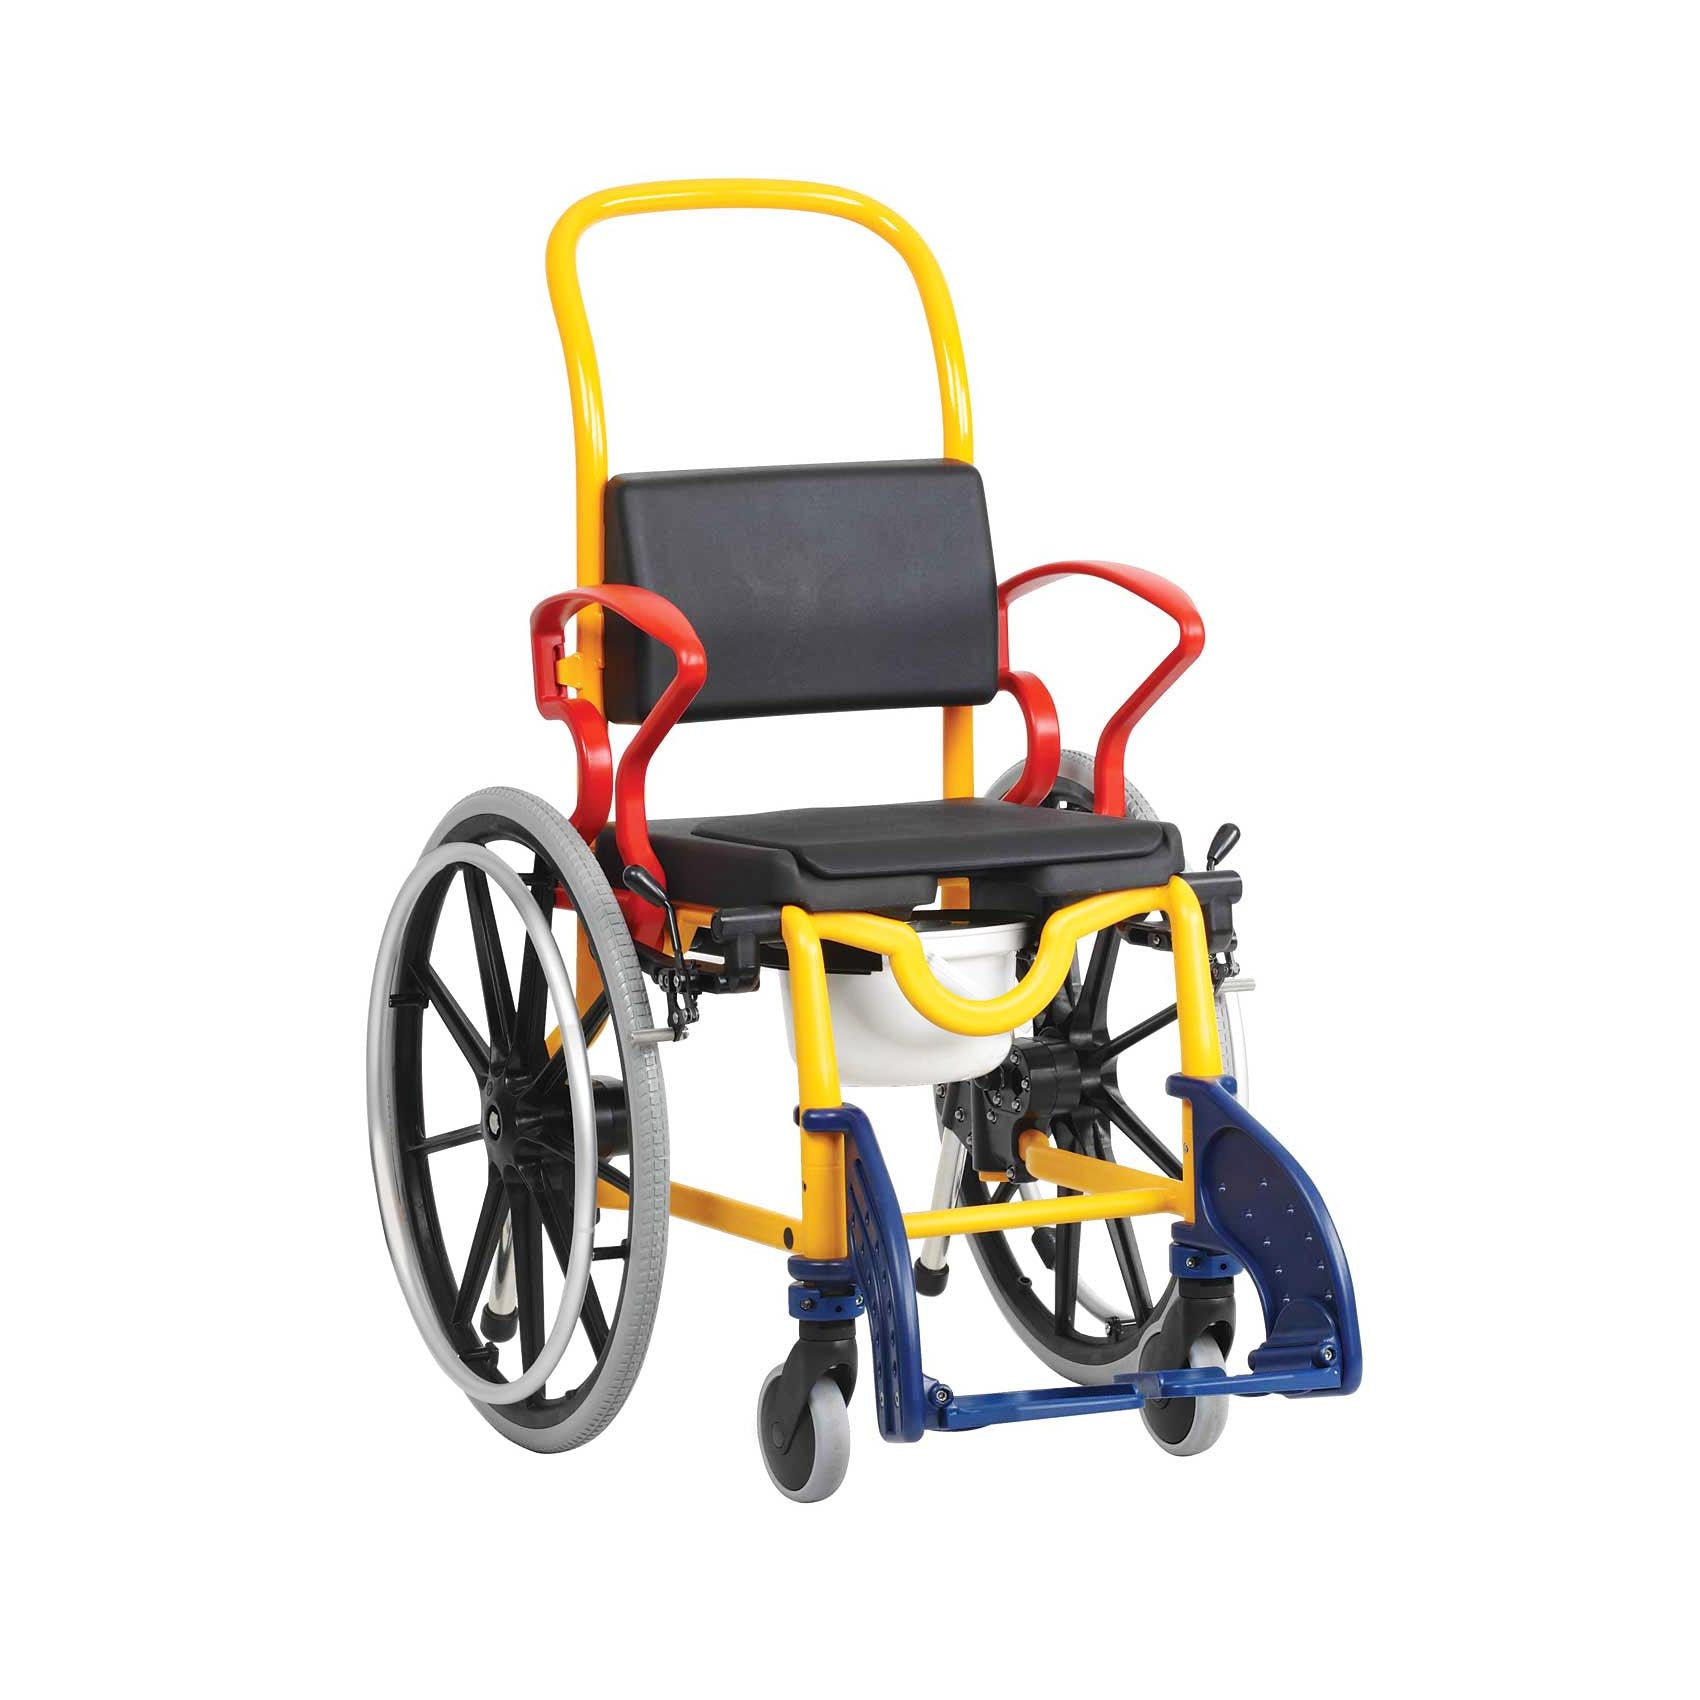 Rebotec Augsburg 24 - Self Propelled Child Commode Wheelchair